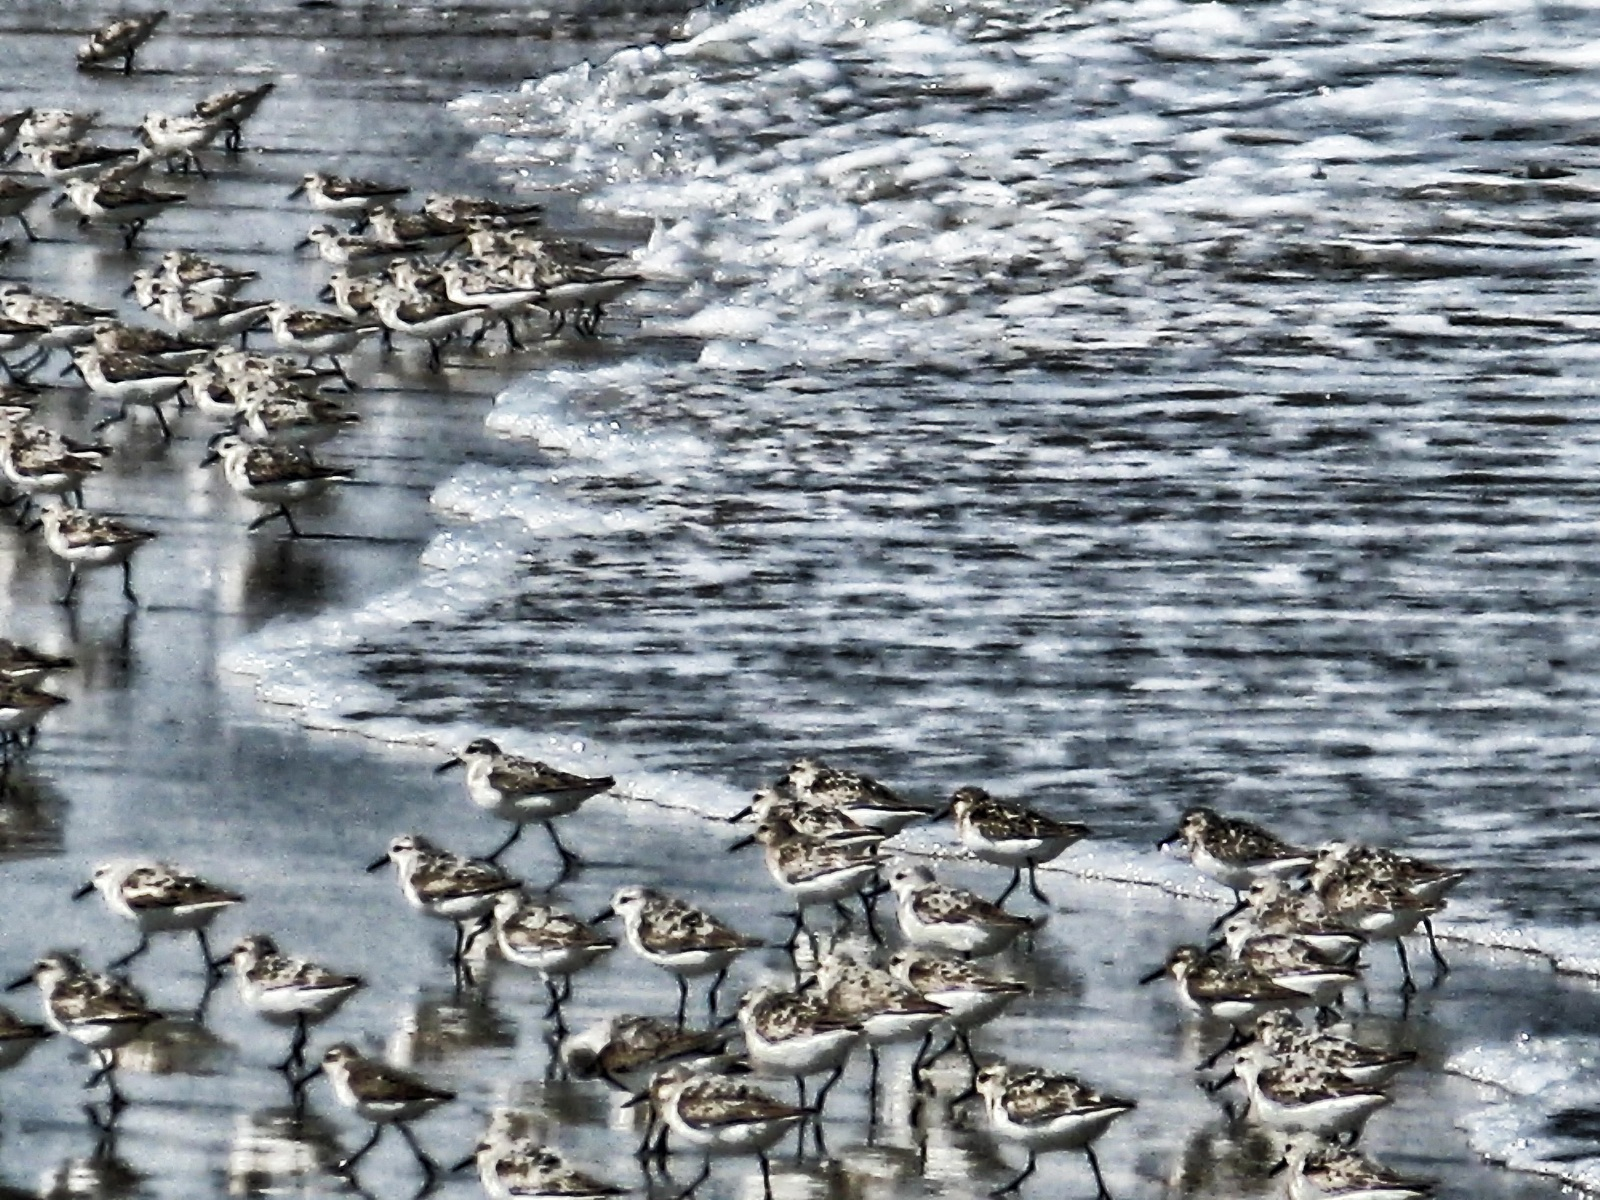 new jersey, sandy hook state park, gunninson beach, shorebirds, wave, , photo